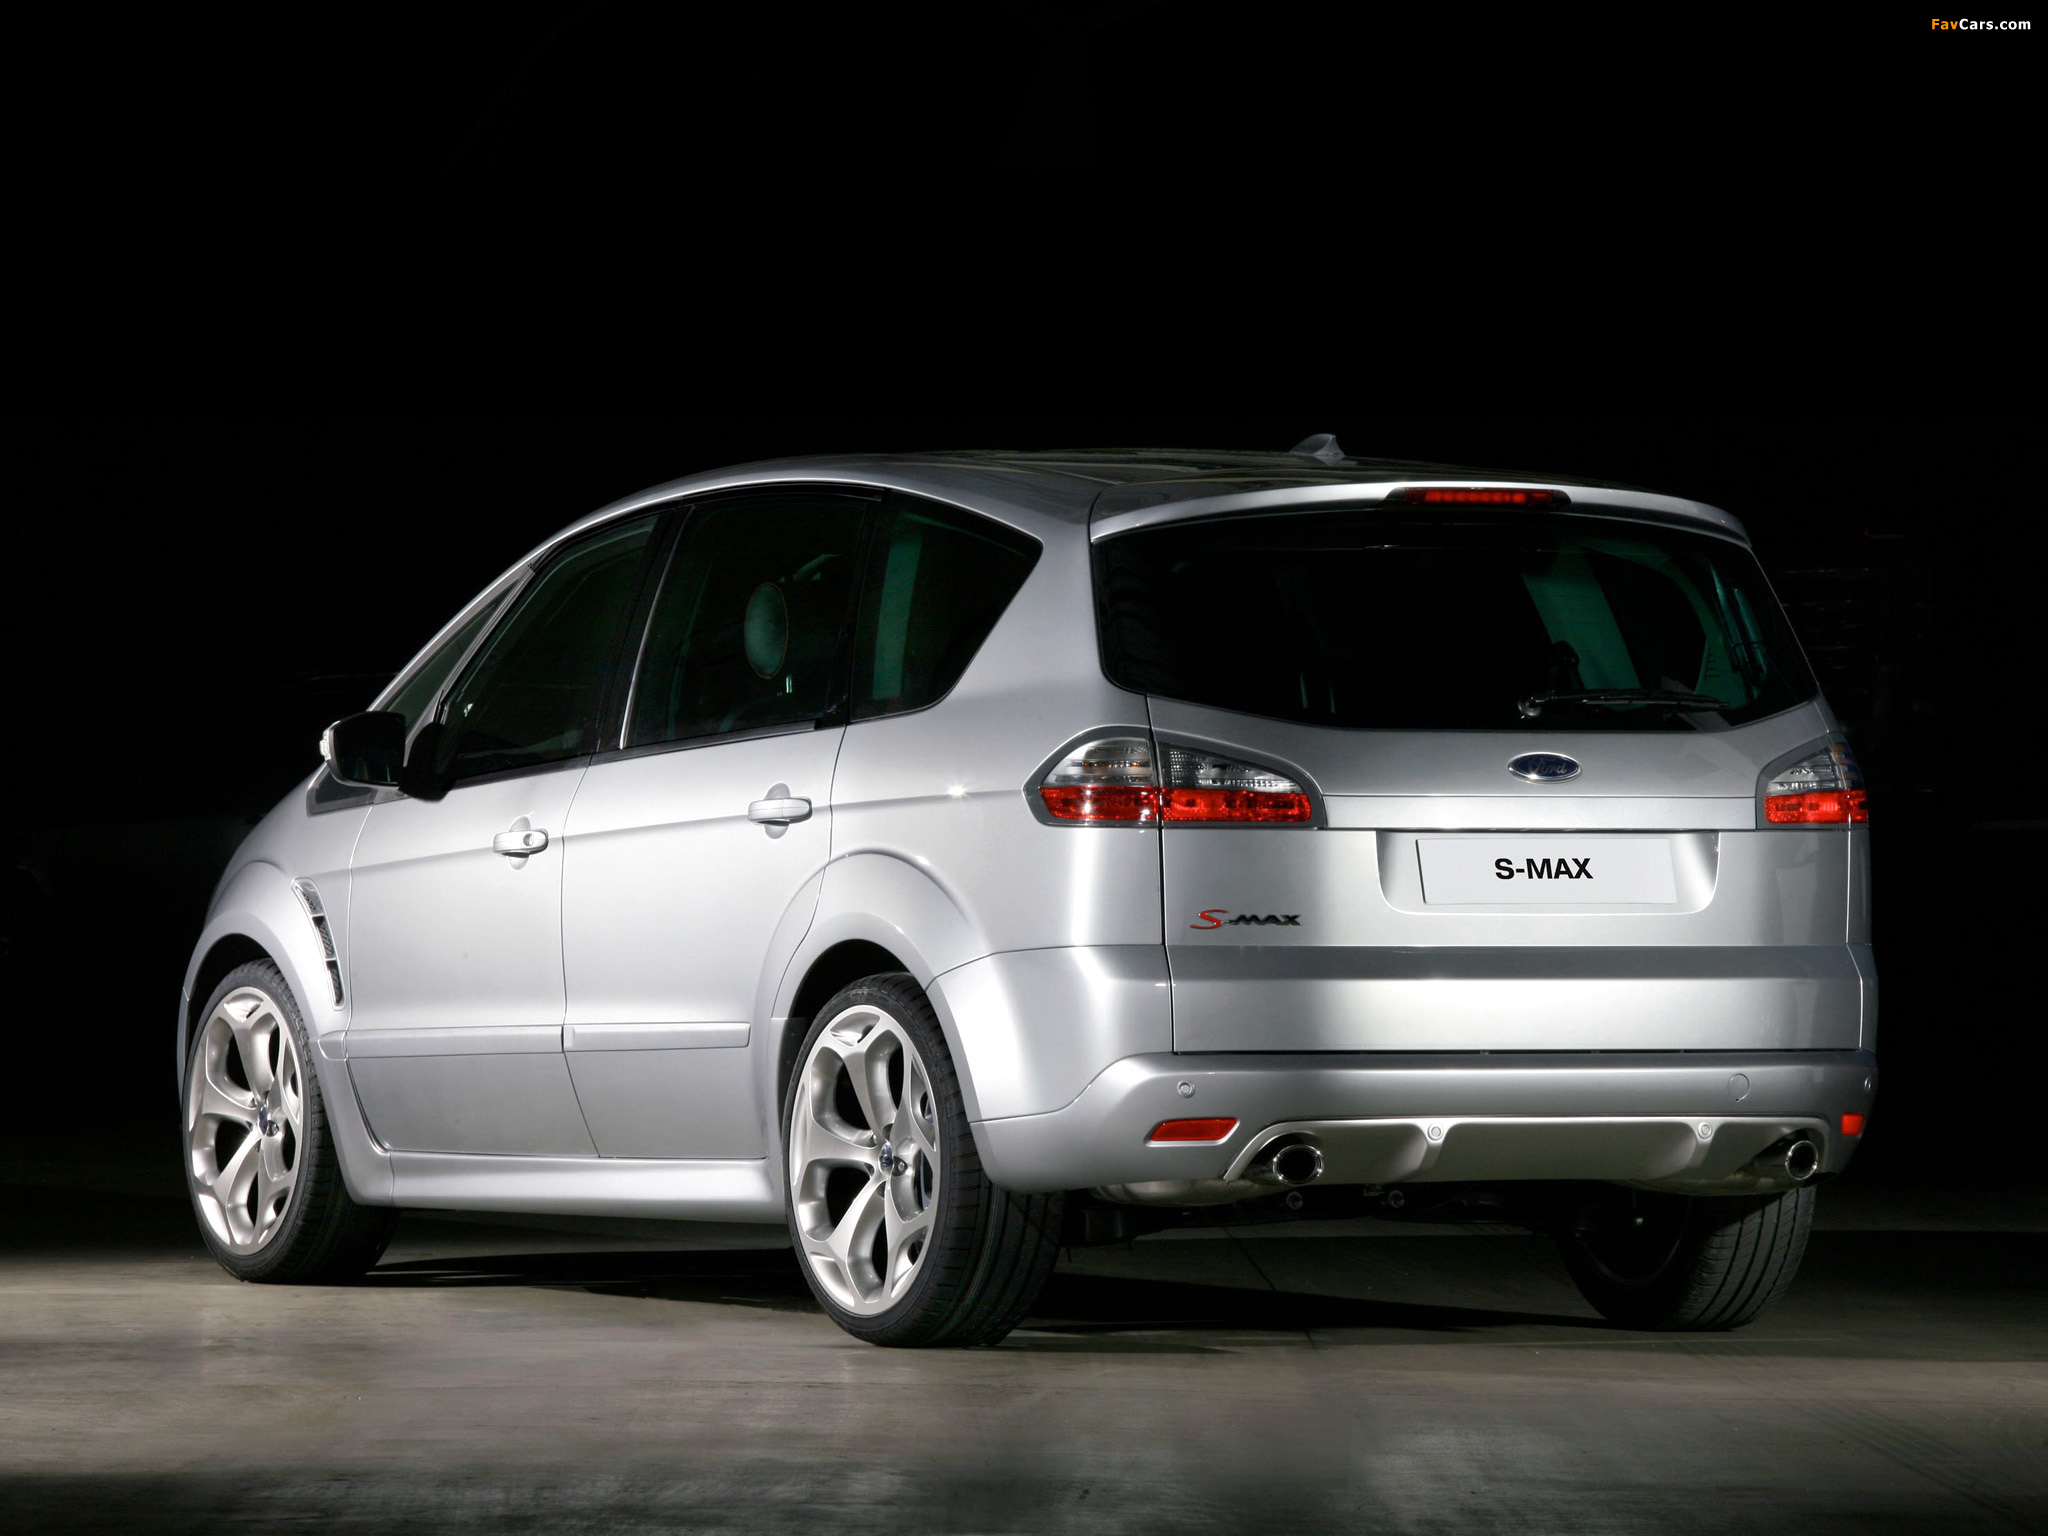 2006 Ford S-Max #9